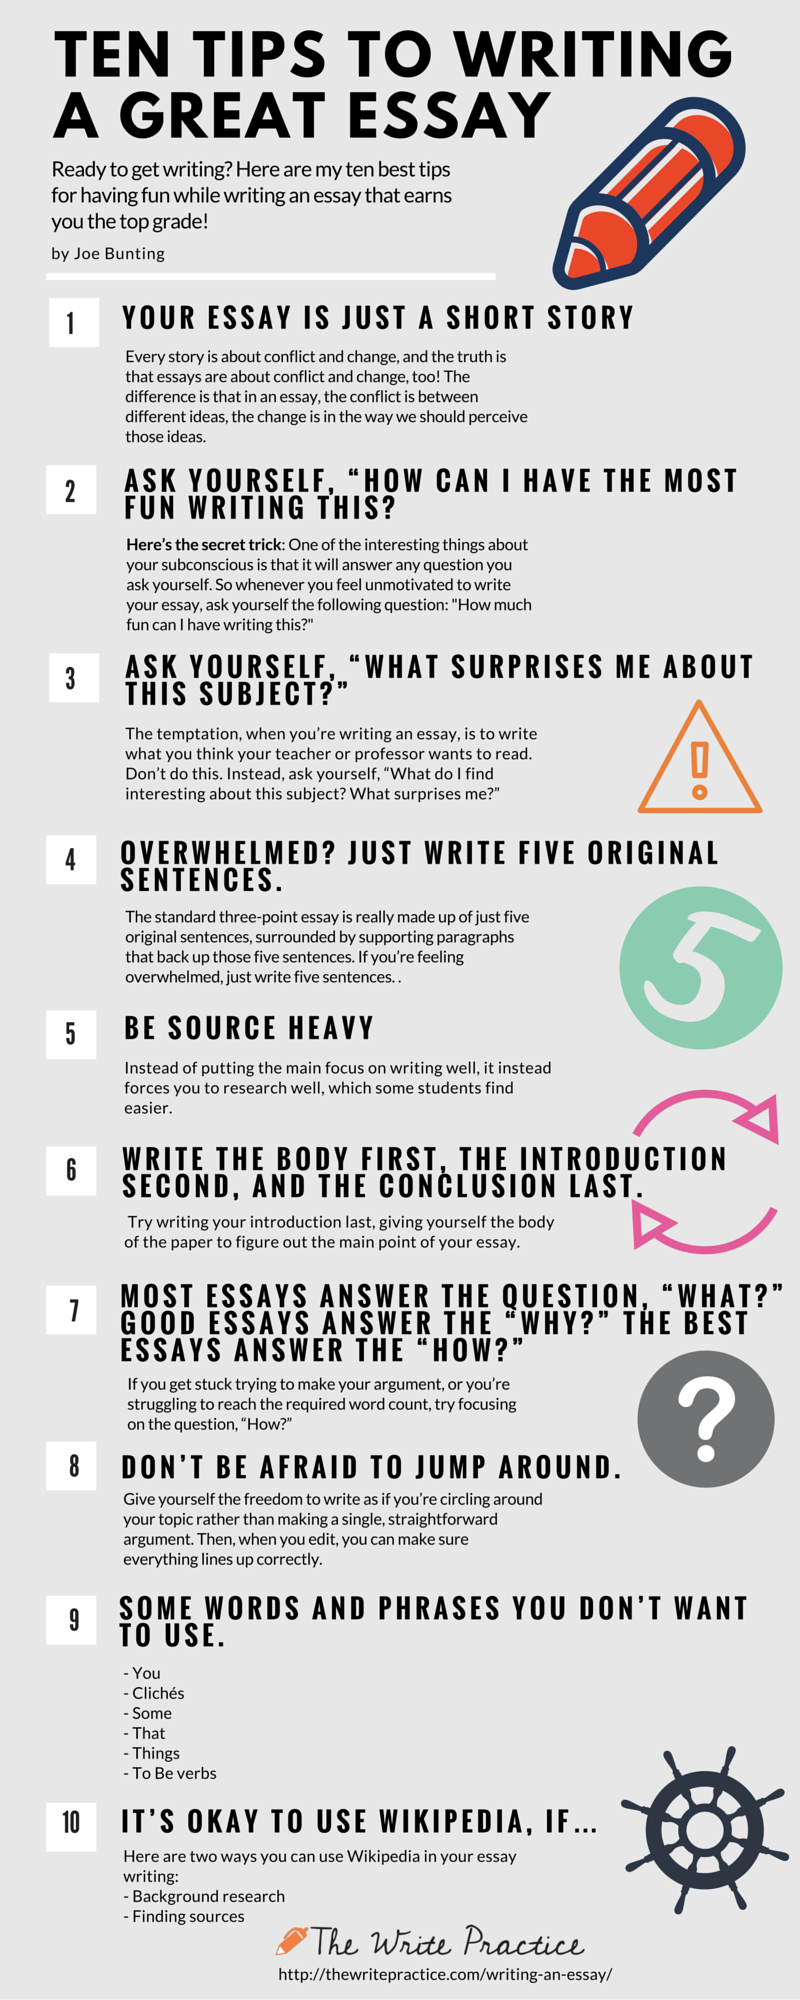 critical essay writing phrases Useful linking words and phrases for essays to indicate a contrast: however on the other hand alternatively in contrast instead conversley on the contary infact.